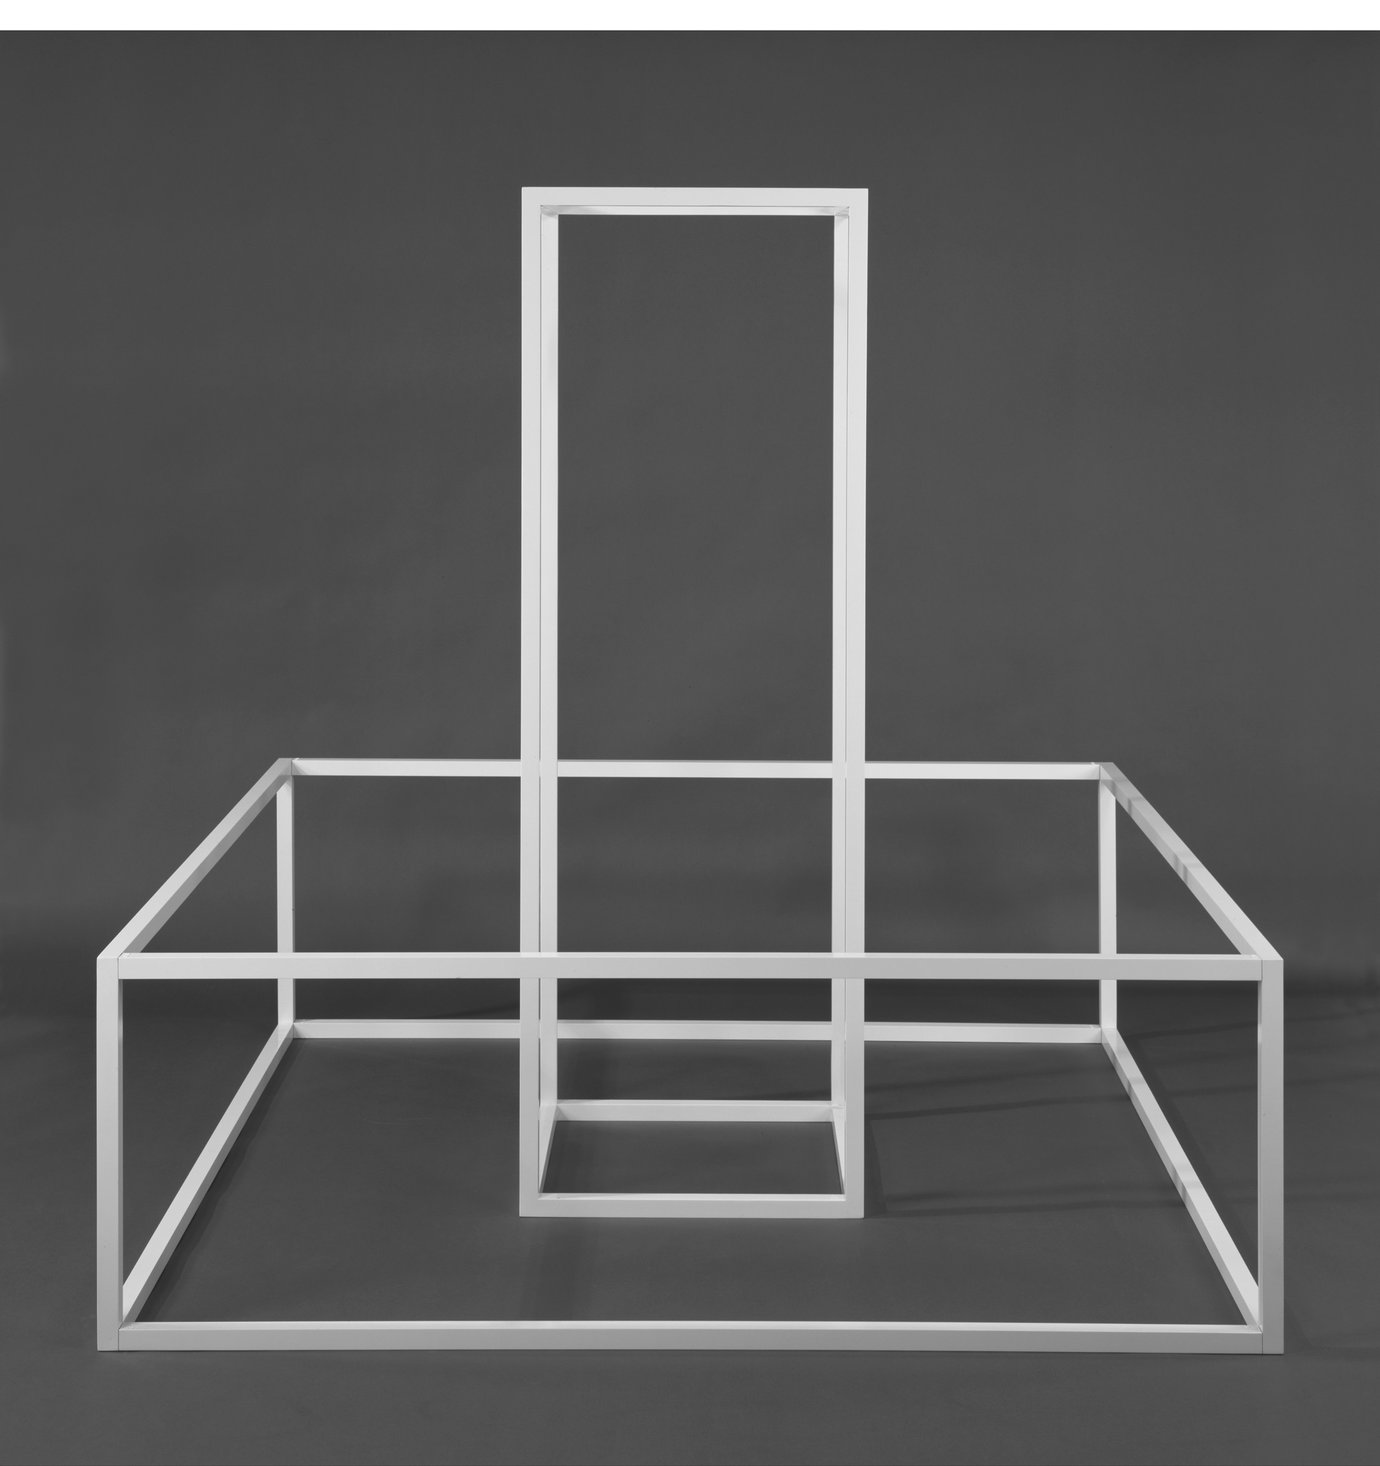 ", 1967. Baked enamel on aluminum, 84"" x 84"" x 84"" (213.4 cm x 213.4 cm x 213.4 cm)."